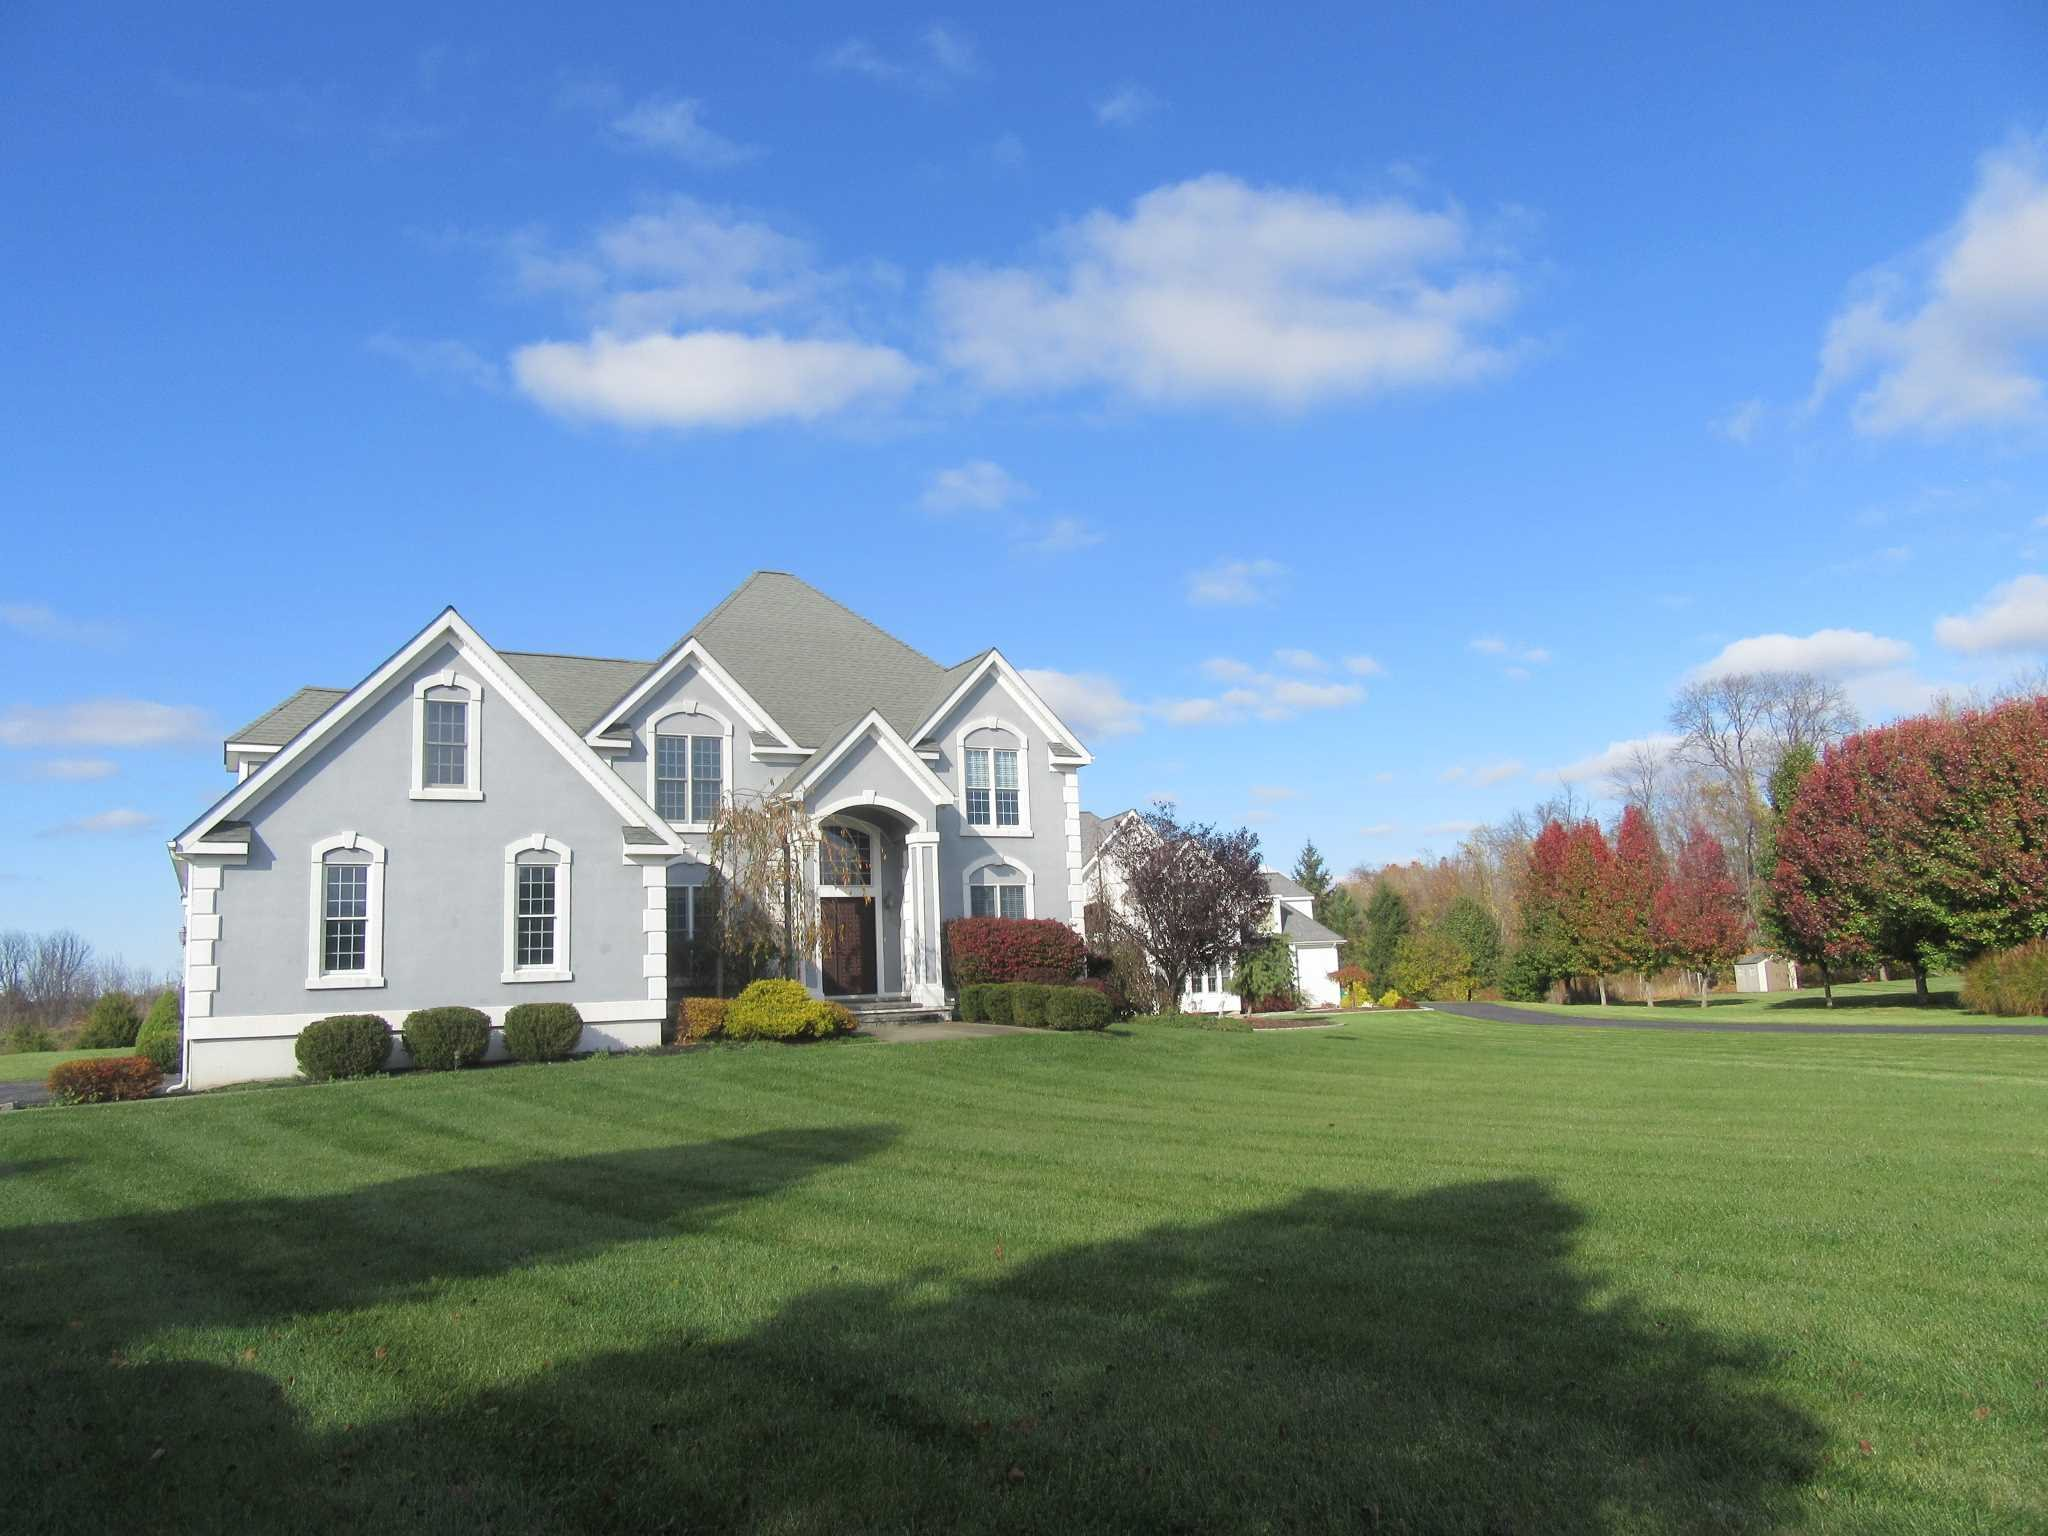 Single Family Home for Sale at 40 WINTER GREEN Place 40 WINTER GREEN Place East Fishkill, New York 12533 United States